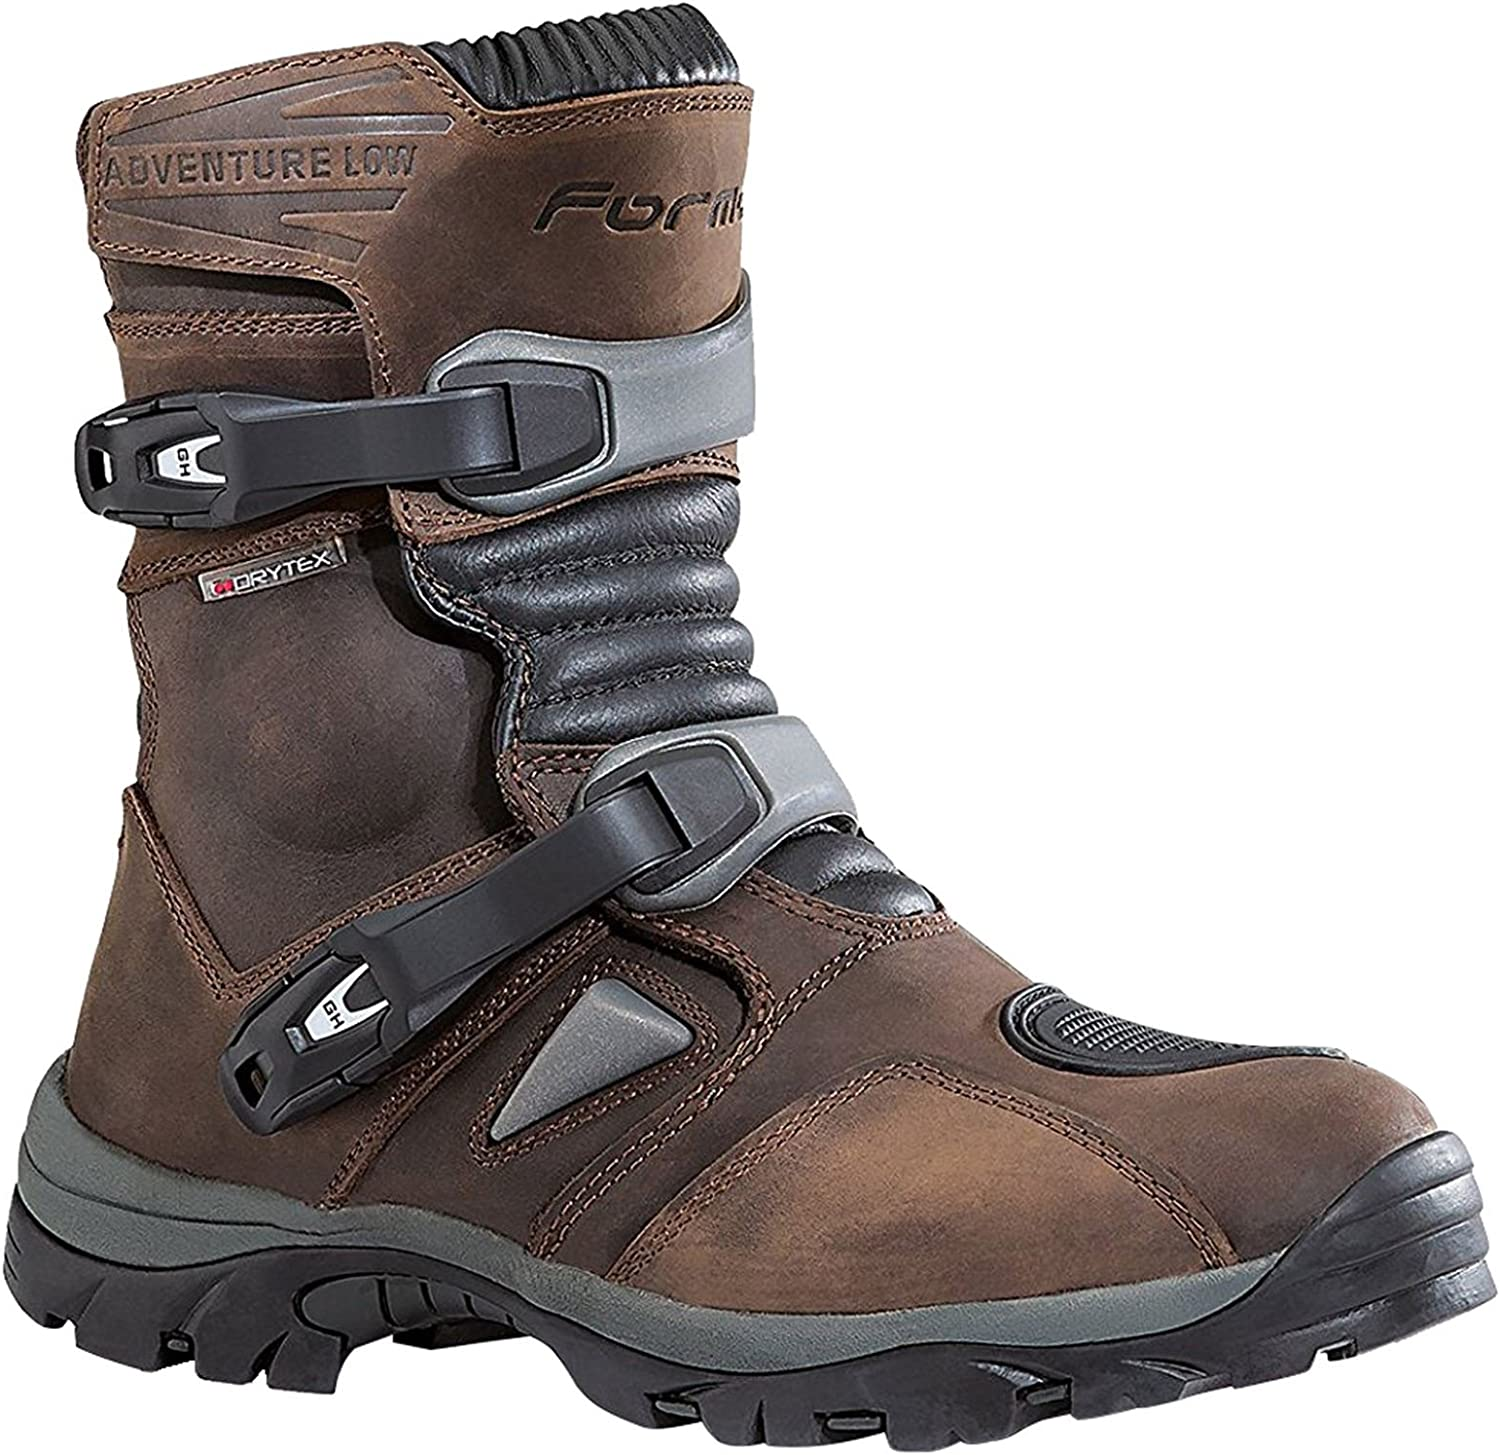 FORMA Adventure Low WP CE Approved Motorcycle Boots Brown